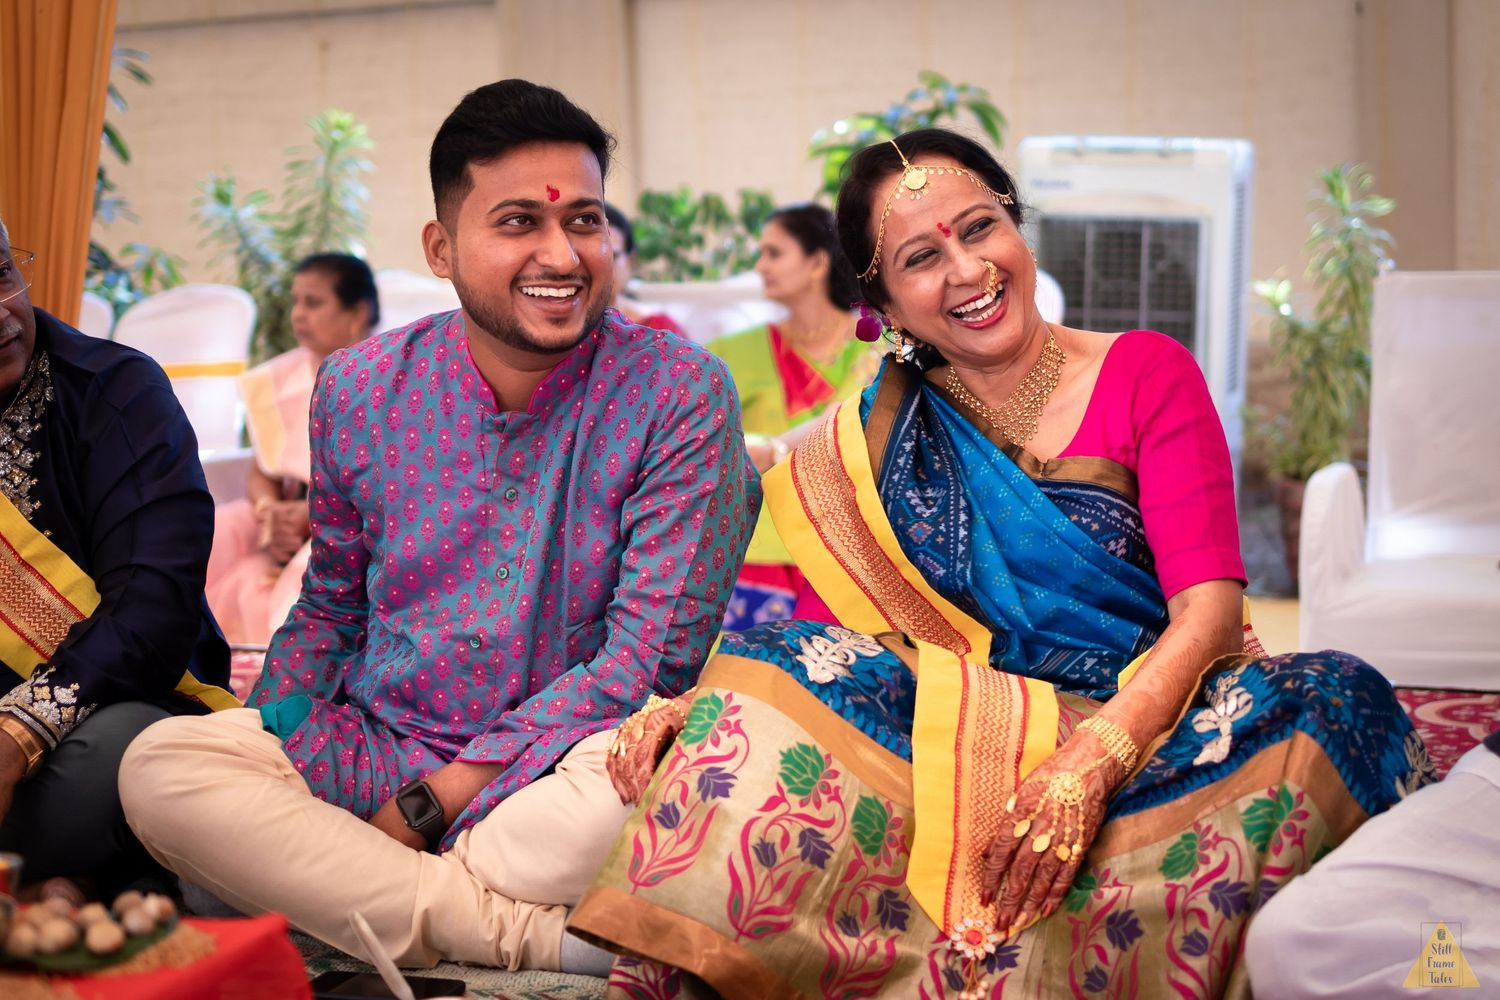 Groom and his mother sharing candid moments at haldi ceremony